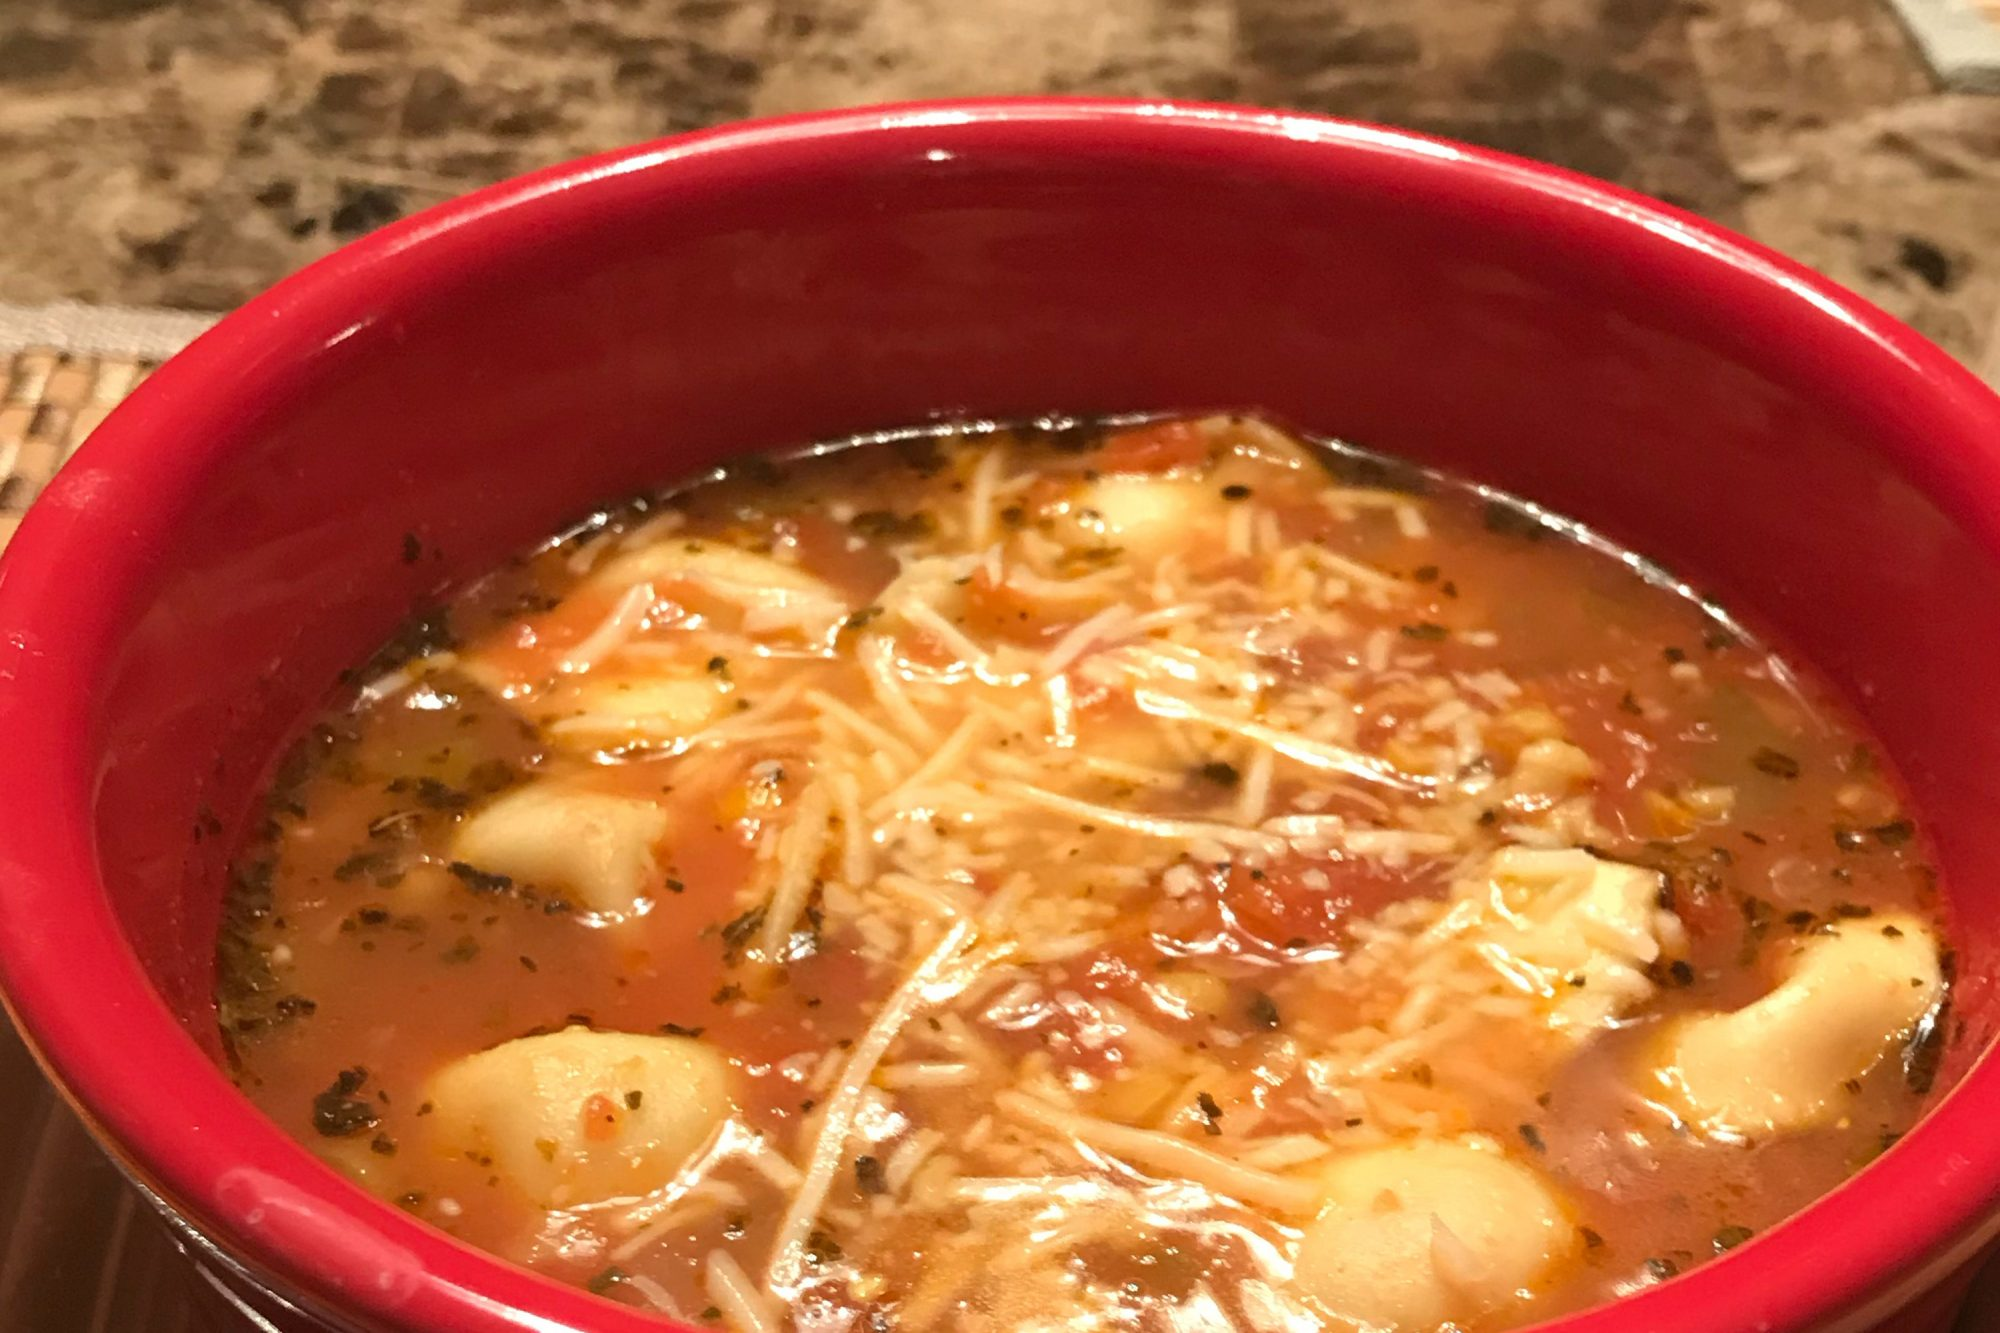 Tortellini Soup in a red bowl